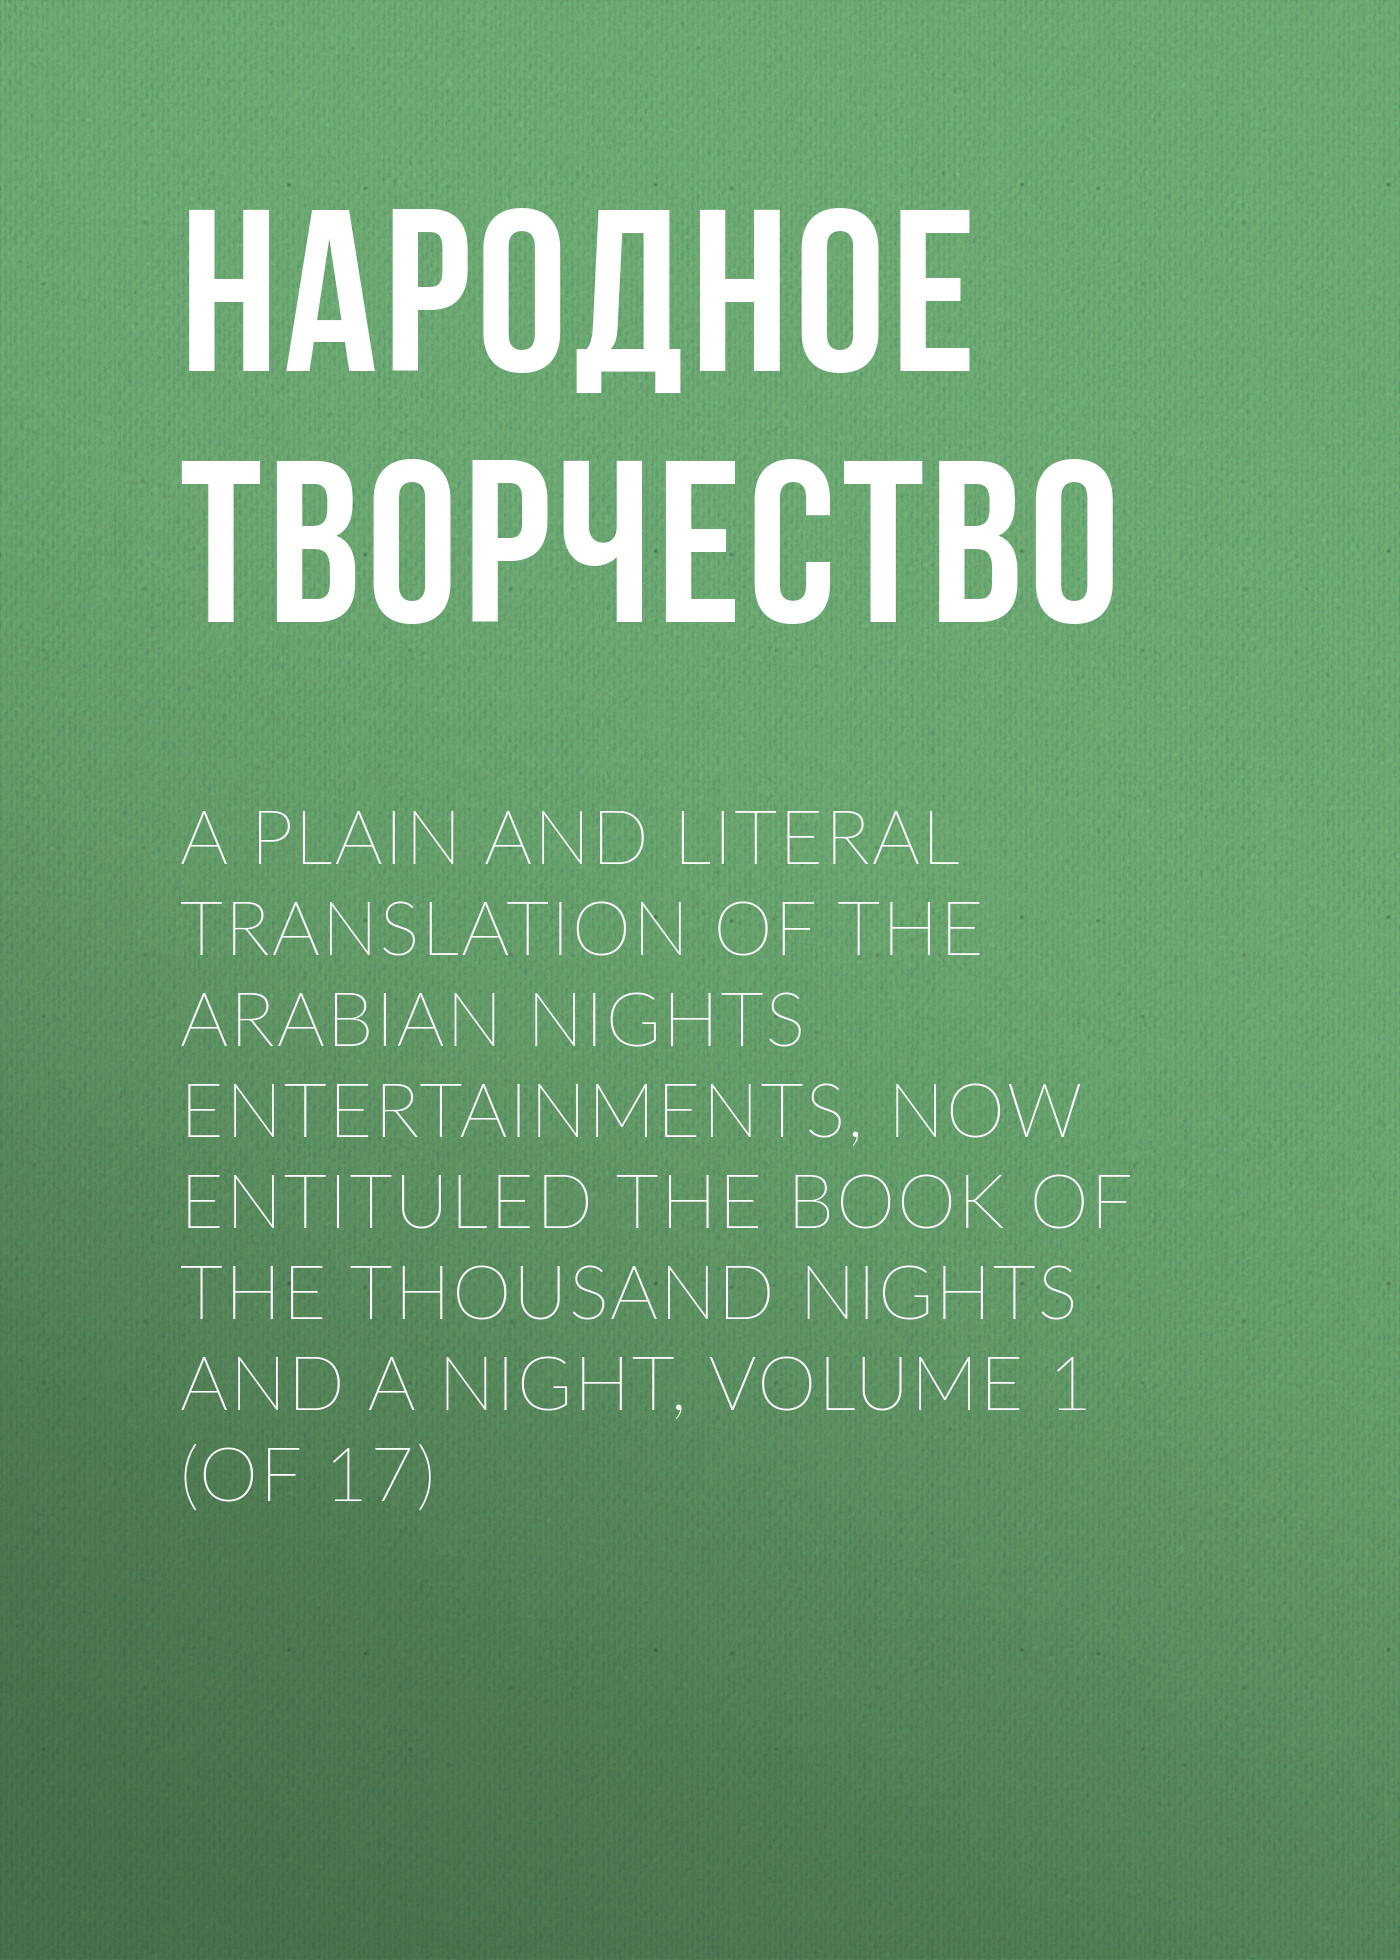 Народное творчество A plain and literal translation of the Arabian nights entertainments, now entituled The Book of the Thousand Nights and a Night, Volume 1 (of 17) цена